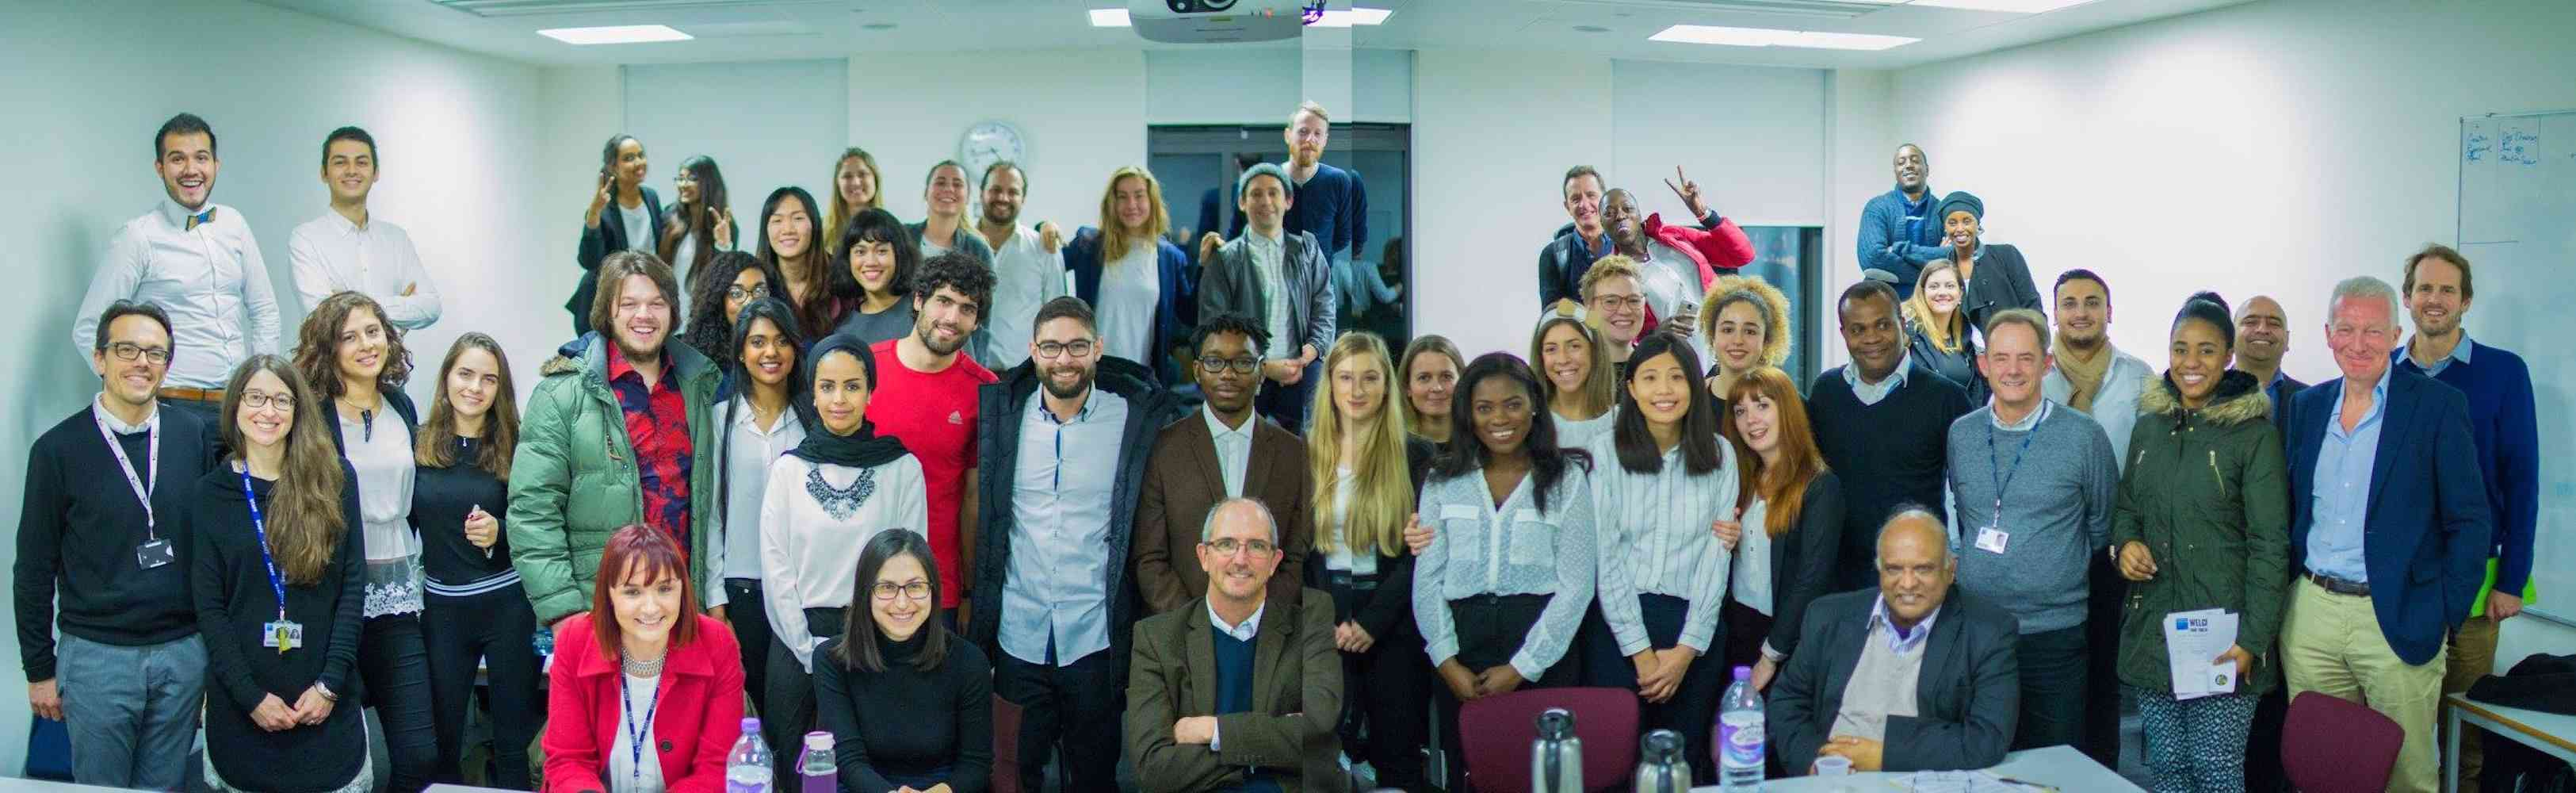 Kingston Business School Dragons' Den December 2016 - Start-up teams and judges at Kingston Business School Dragons' Den December 2016